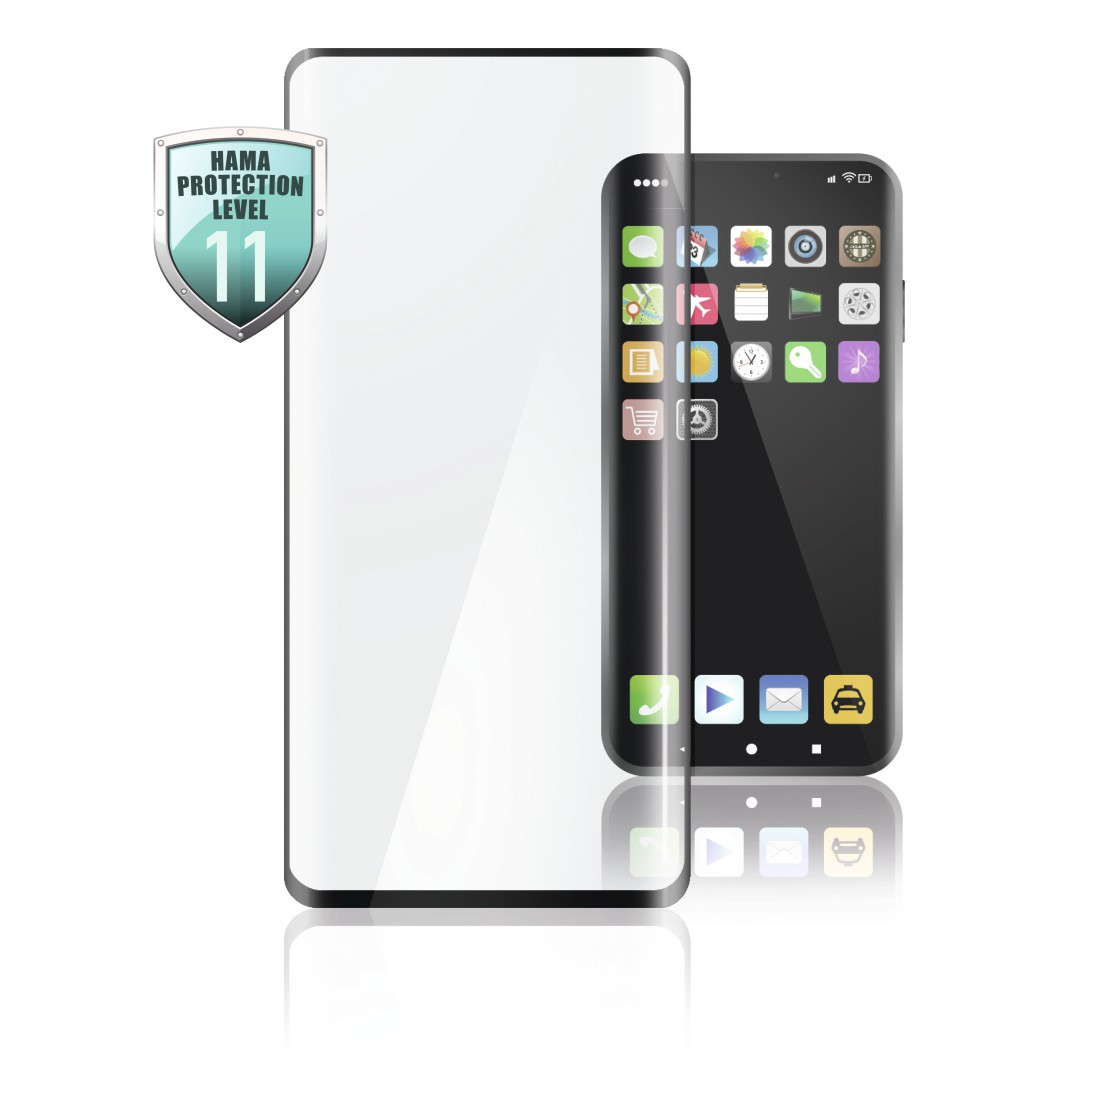 abx High-Res Image - Hama, Verre de protection Full-Screen 3D pour Oppo Reno 2, noir